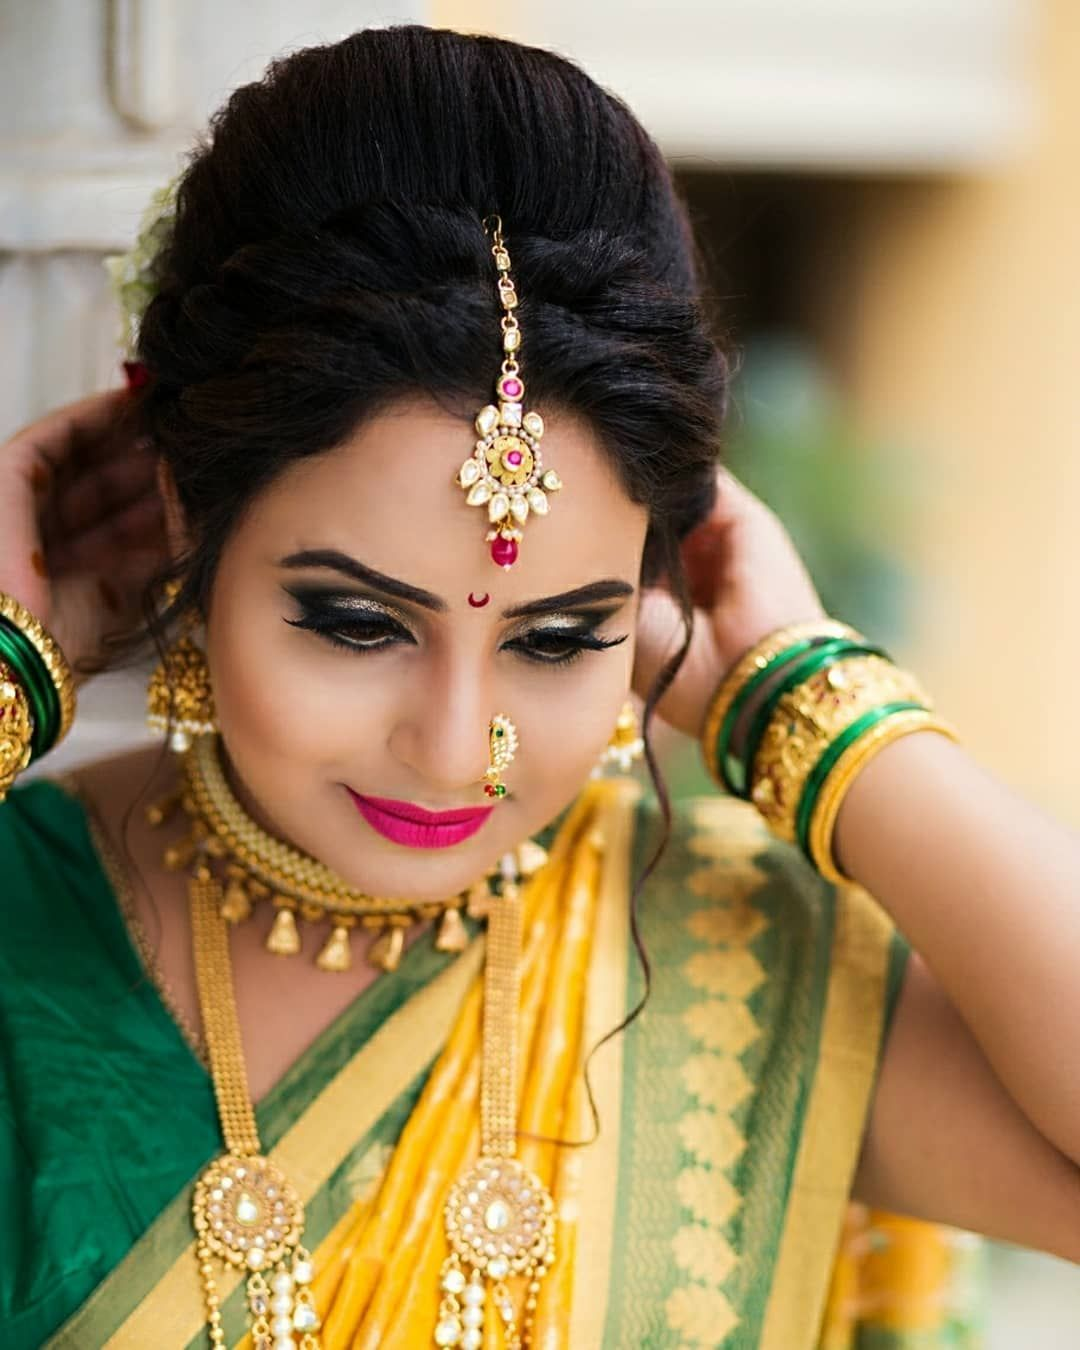 poojapowarmakeovers #weddingmakeup #weddingmood #mumbaibride